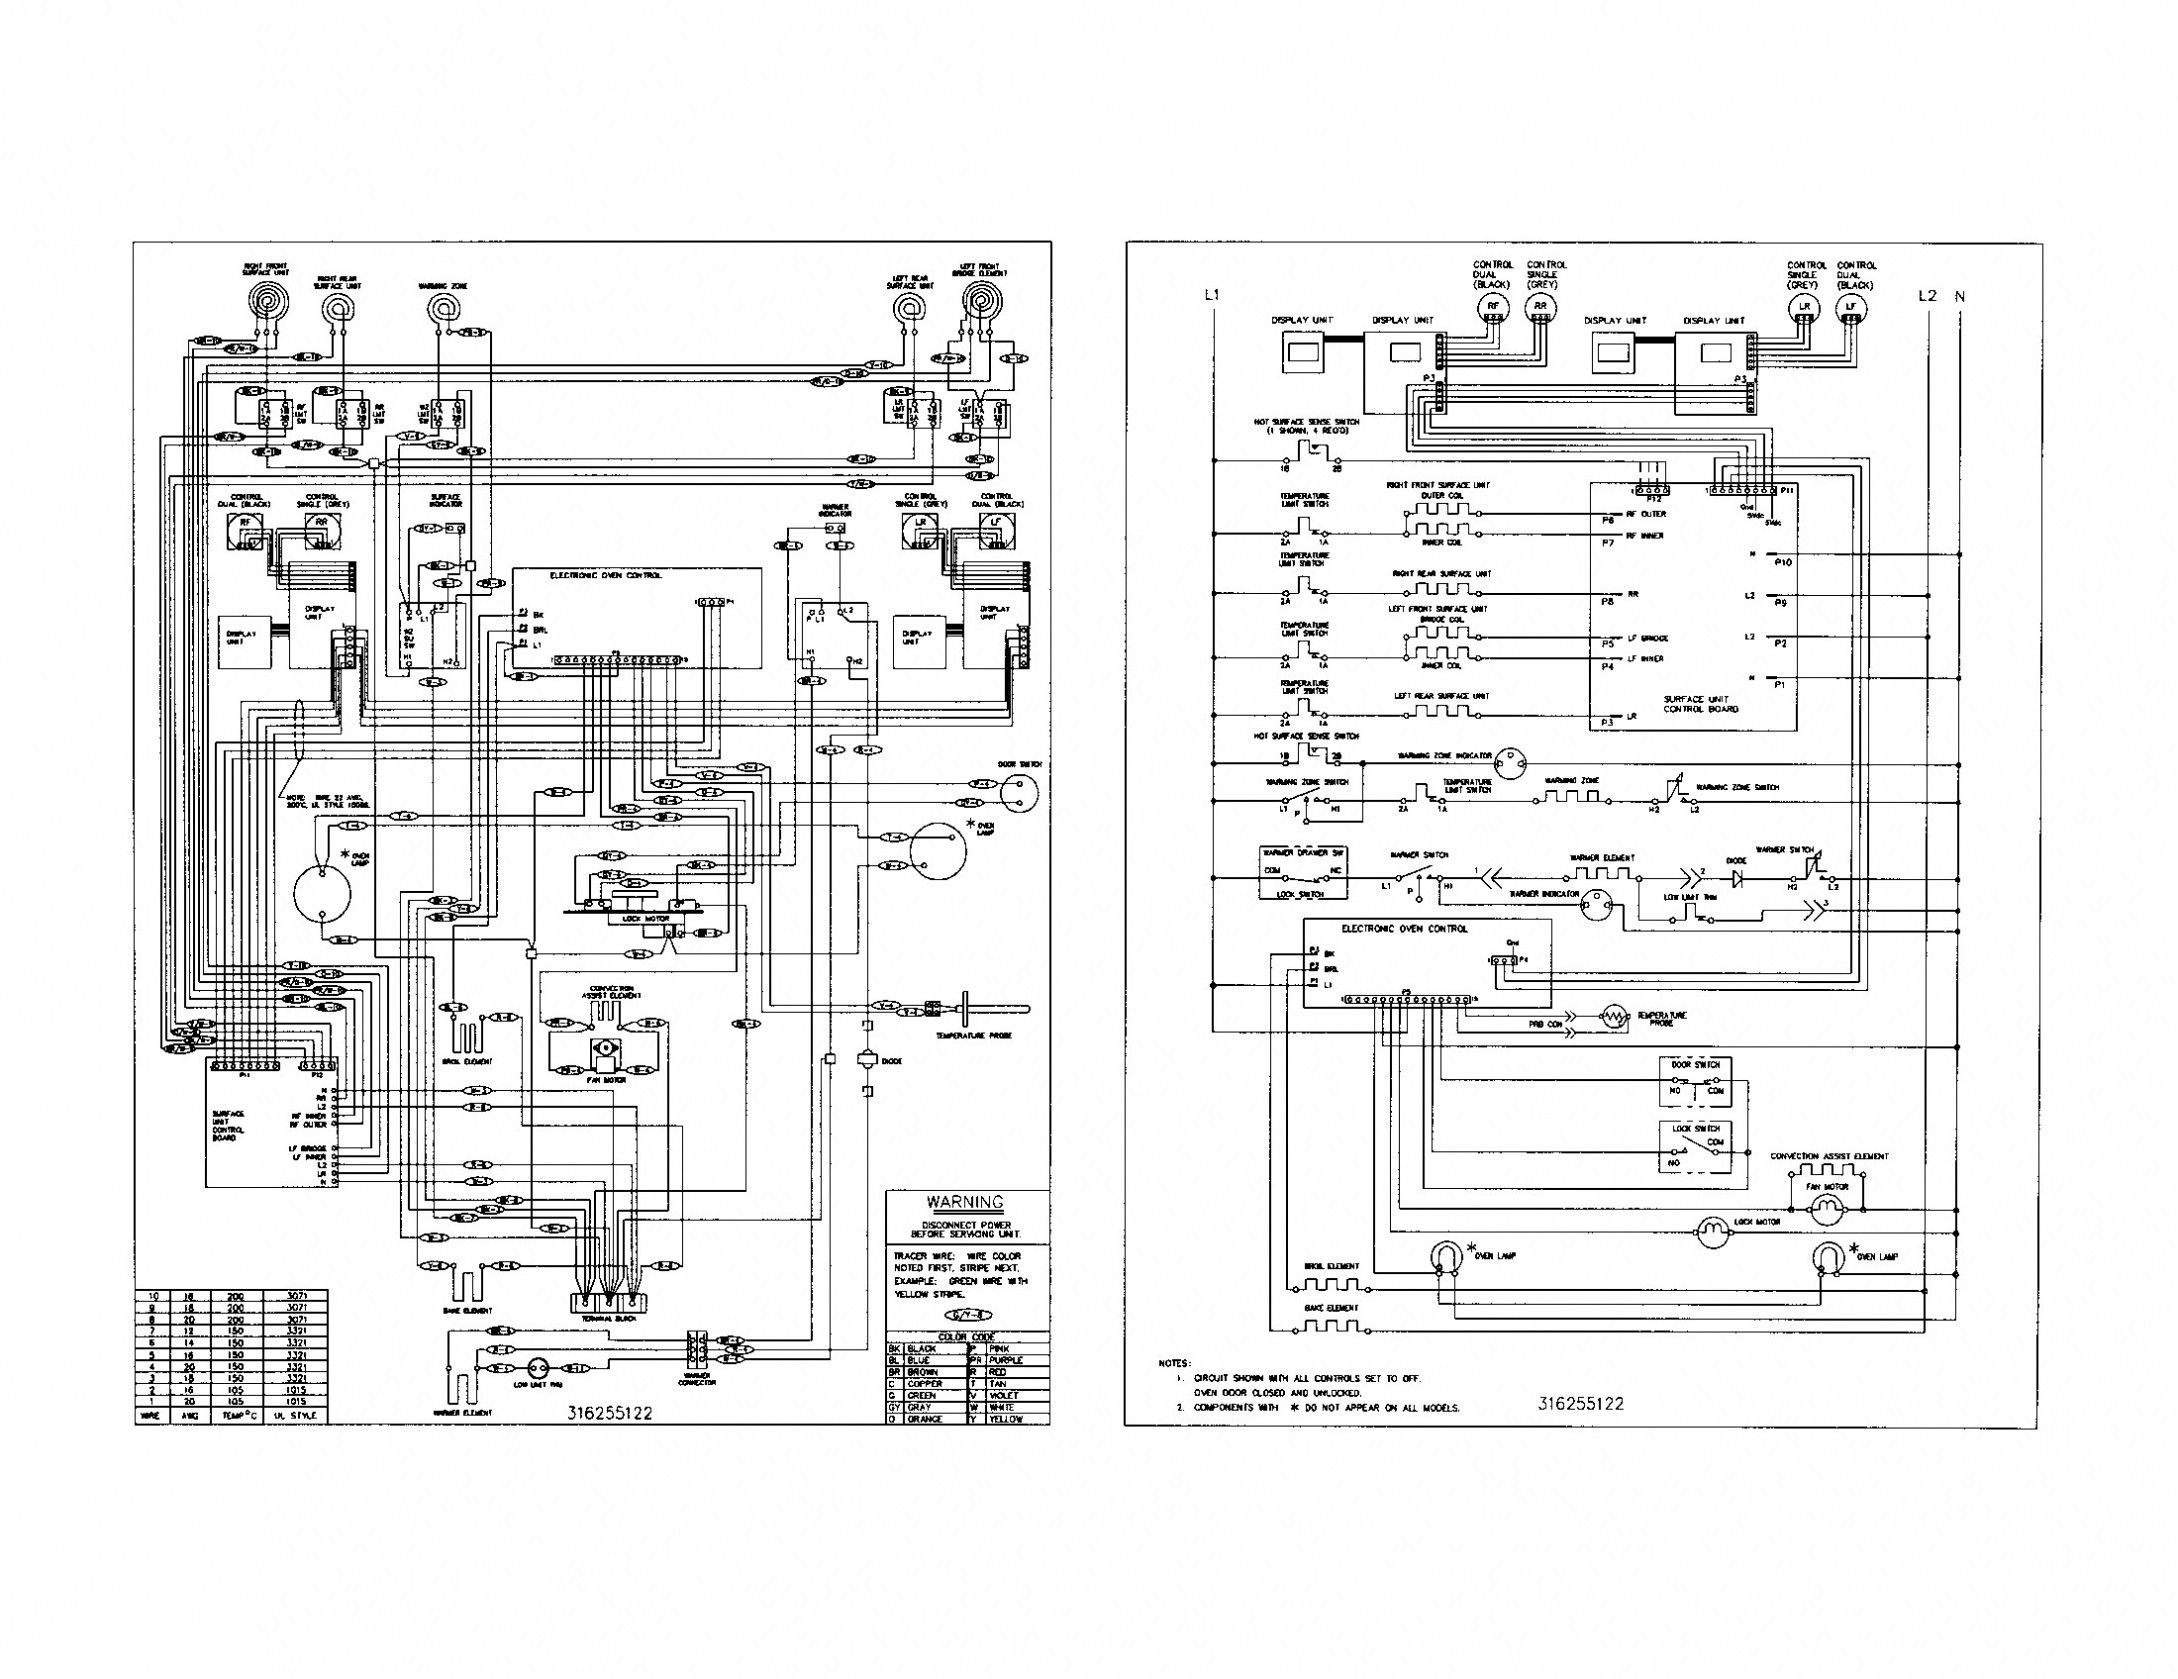 Unique Wiring Diagram For A Gfci Outlet Diagram